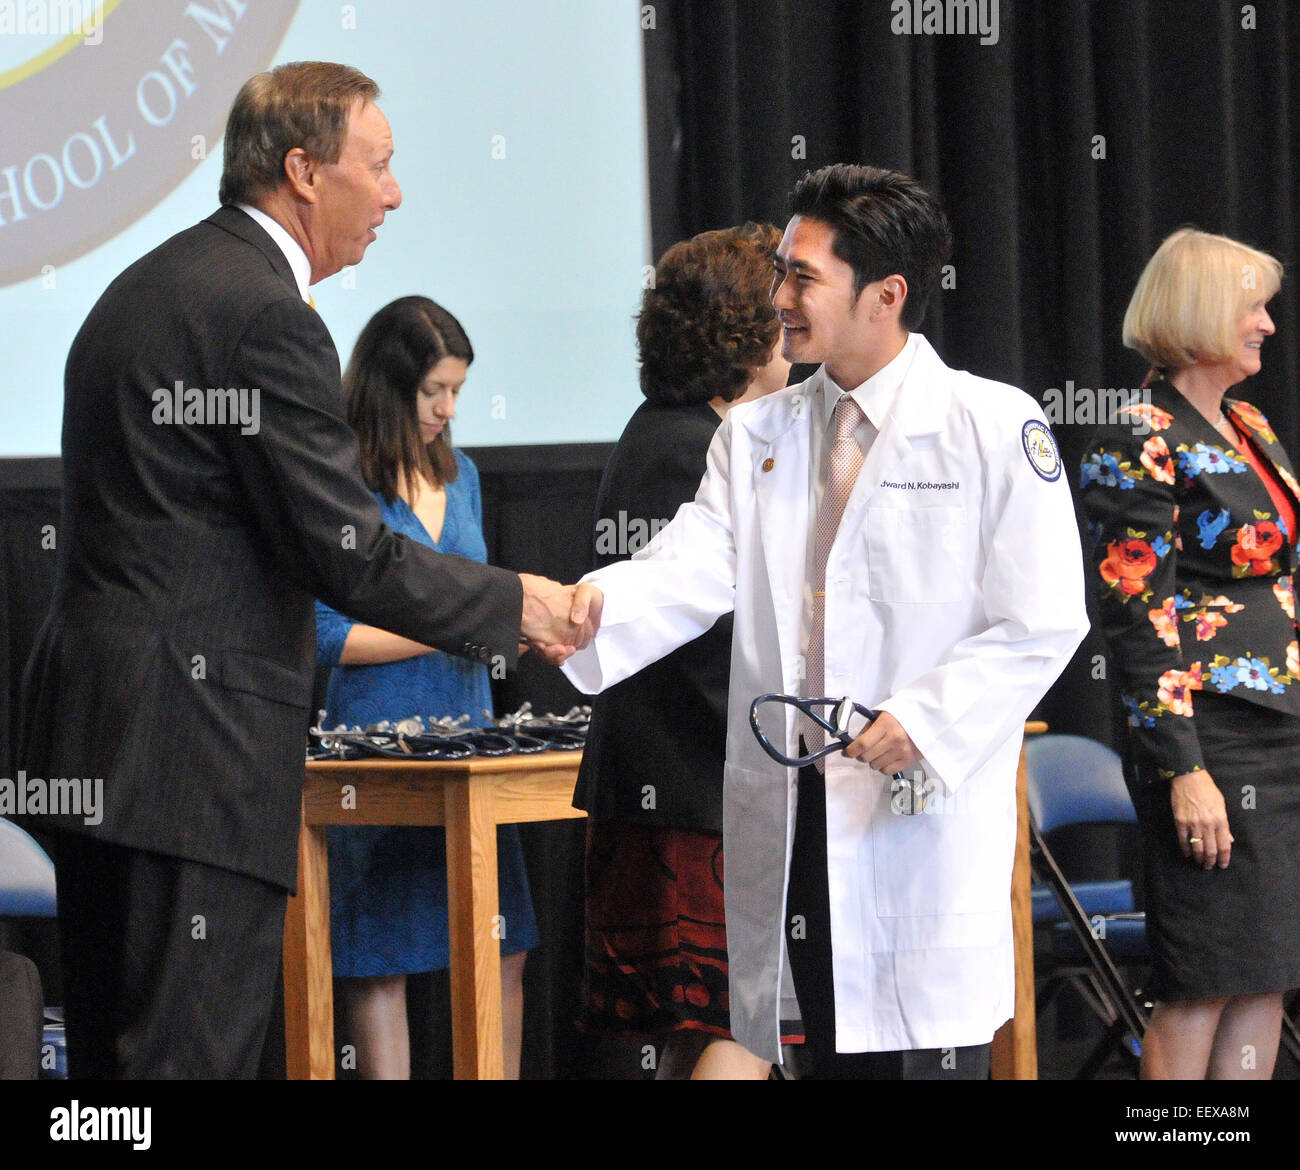 Hamden CT USA Edward Kobayashi gets a handshake from Quinnipiac University president John Lahey after being cloaked. - Stock Image